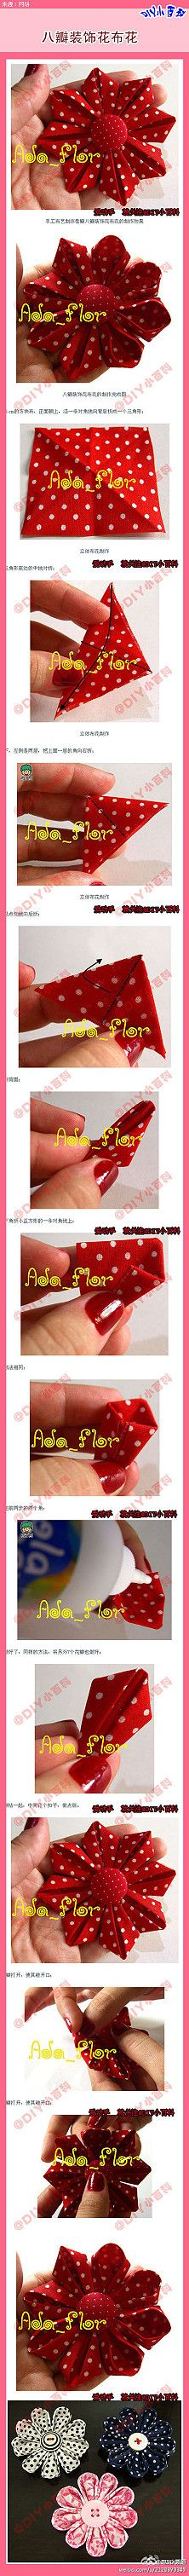 【八瓣装饰花布花】立体布花,可以作胸花….  Cute and easy fabric bow or flower pictorial tutorial